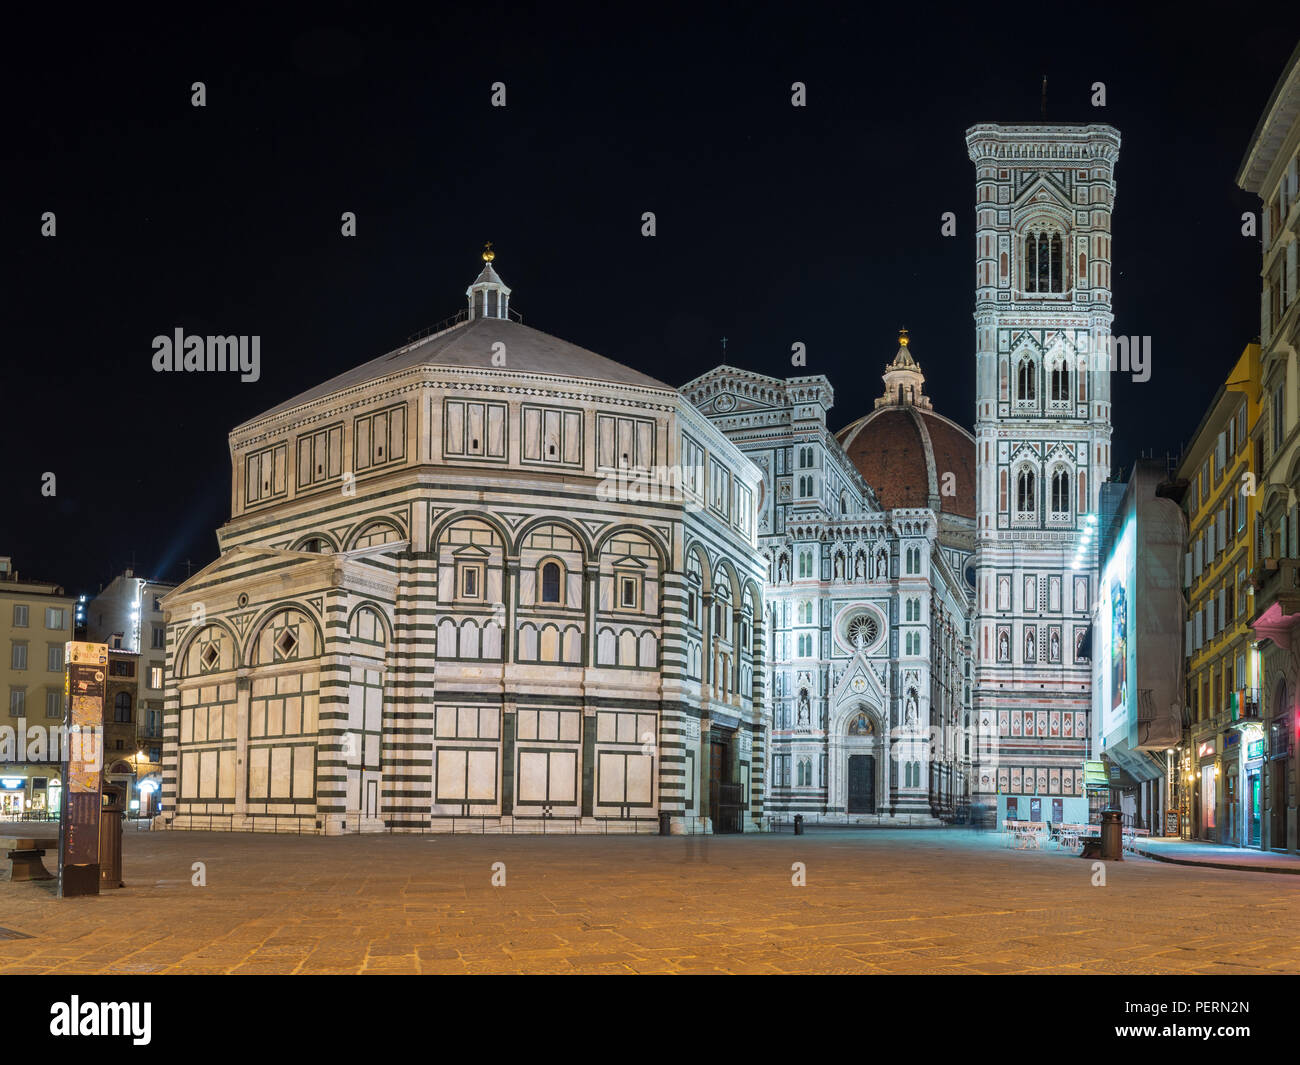 Florence, Italy - March 21, 2018: The Renaissance cathedral, bell tower and baptistry of Florence are lit up at night. - Stock Image